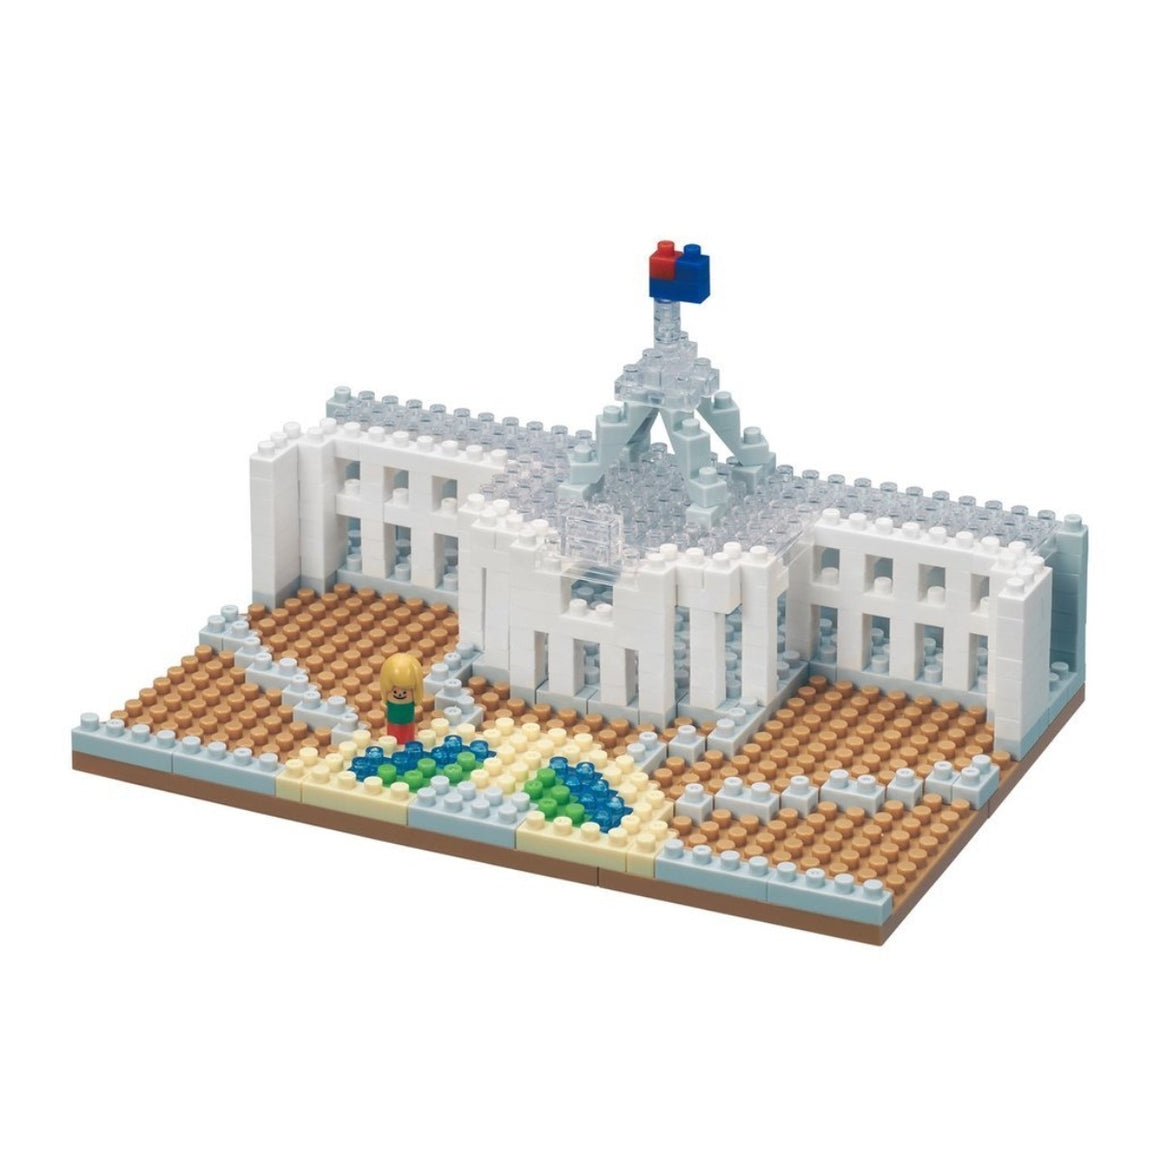 Micro-sized building blocks to replicate intricate detail of the Parliament House featuring colours clear, white, brown, green, blue, red